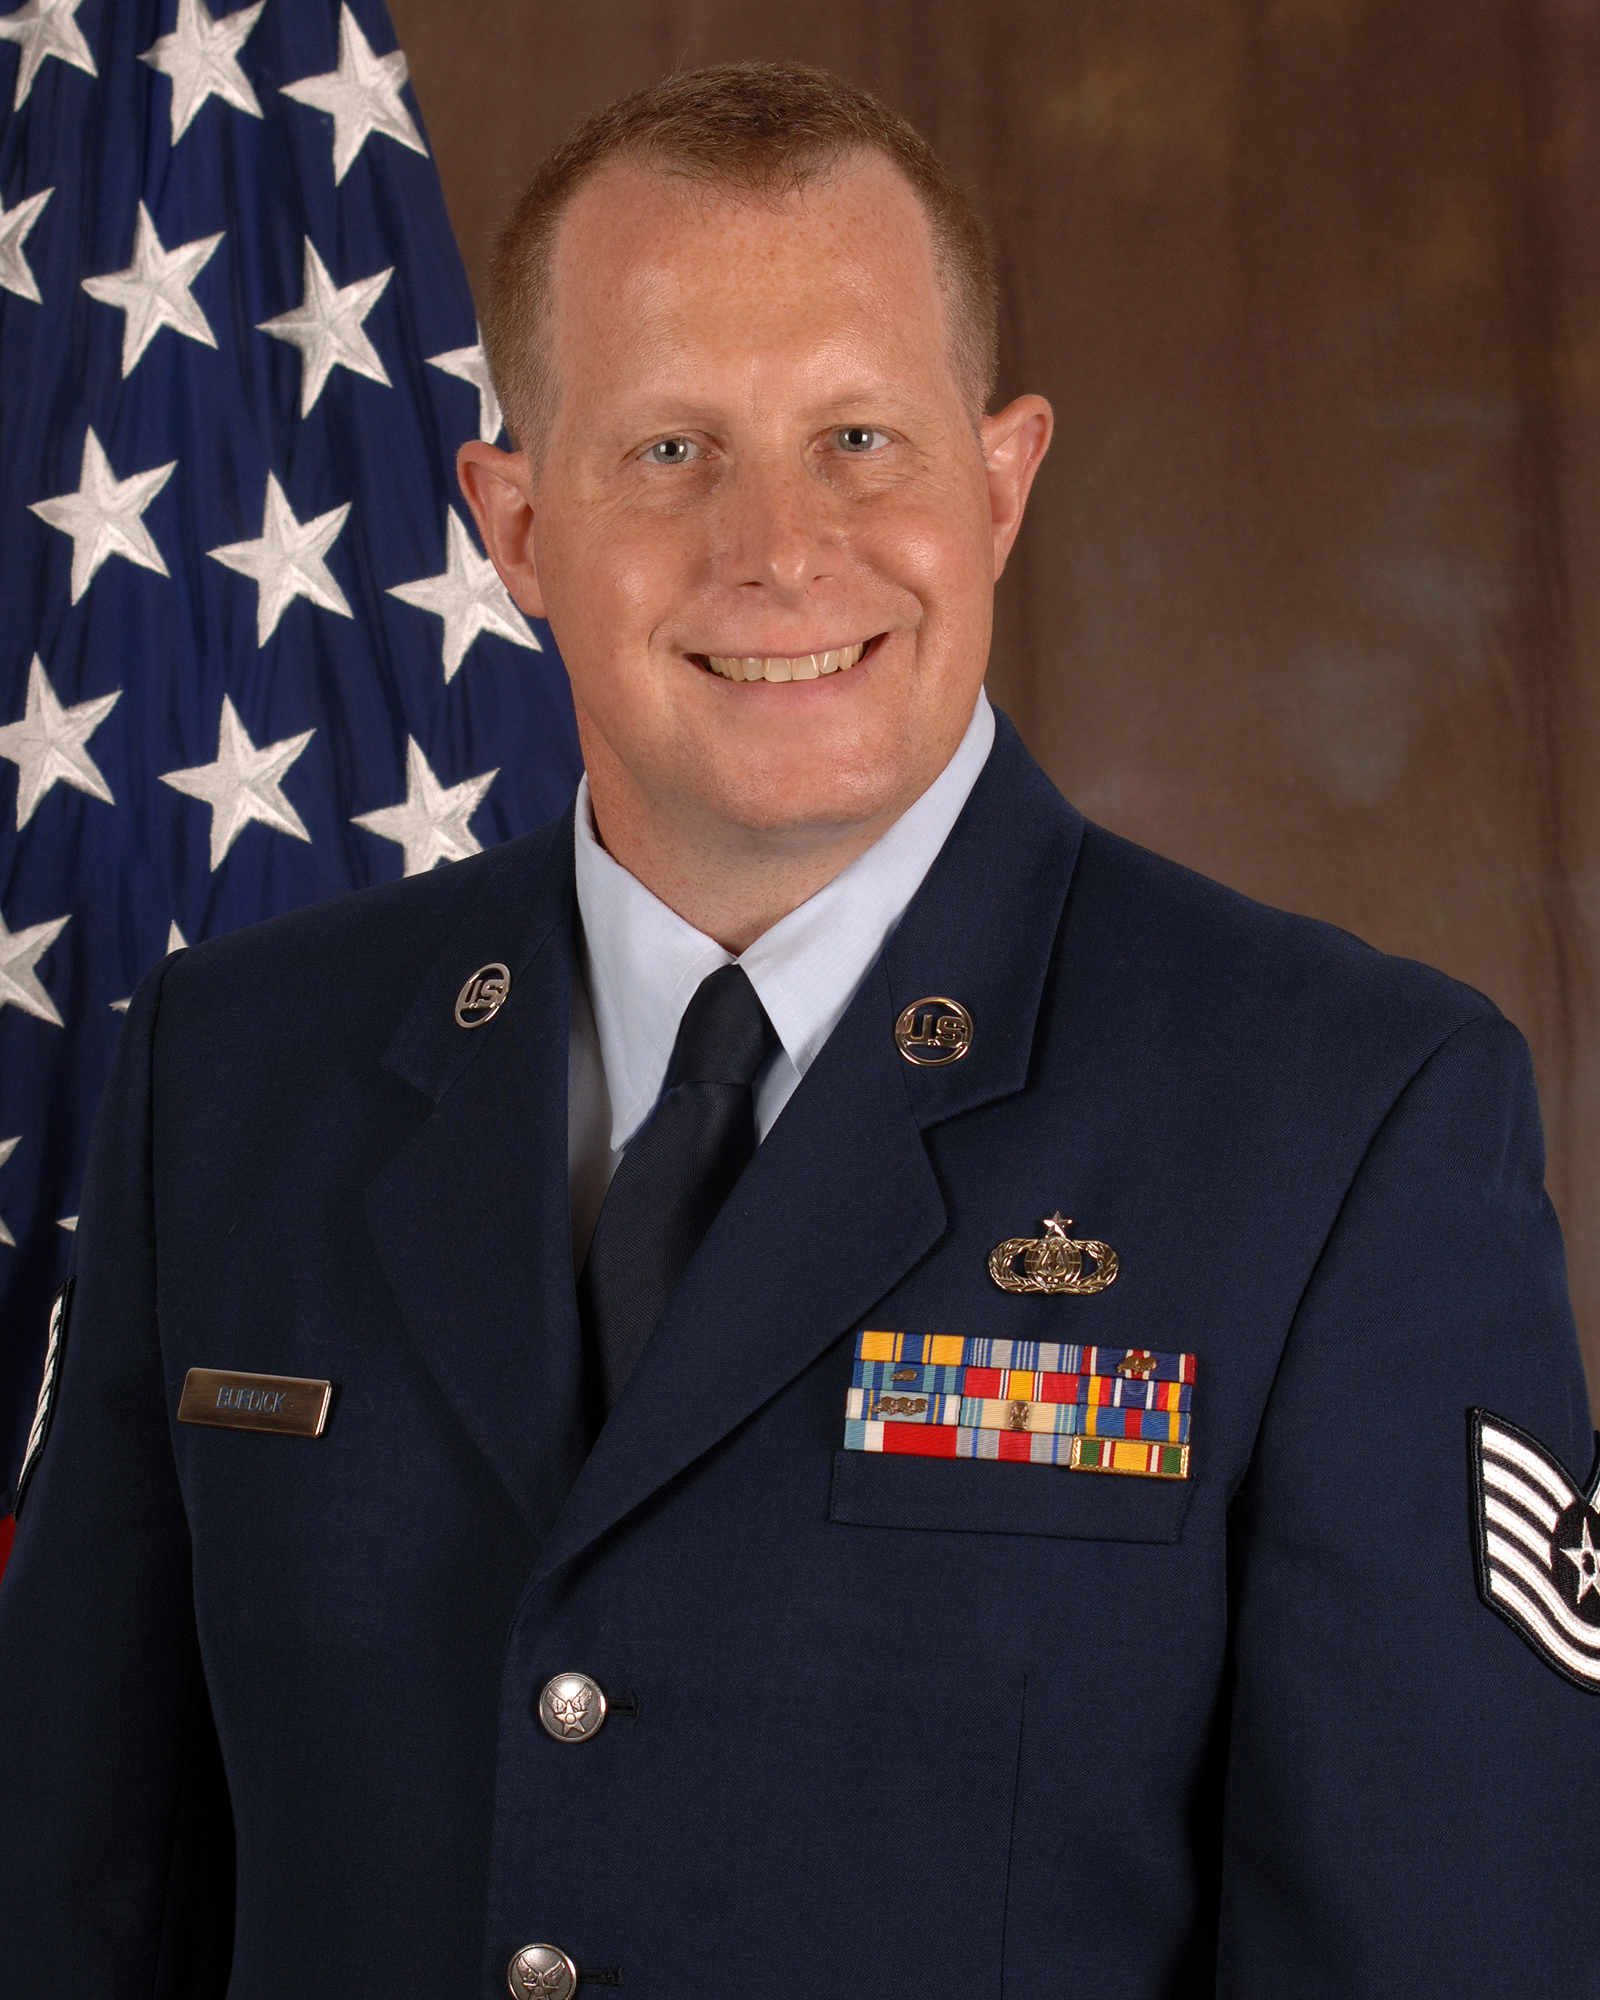 Master Sergeant Steve Burdick, First Sergeant of the Air National Guard Band of the South